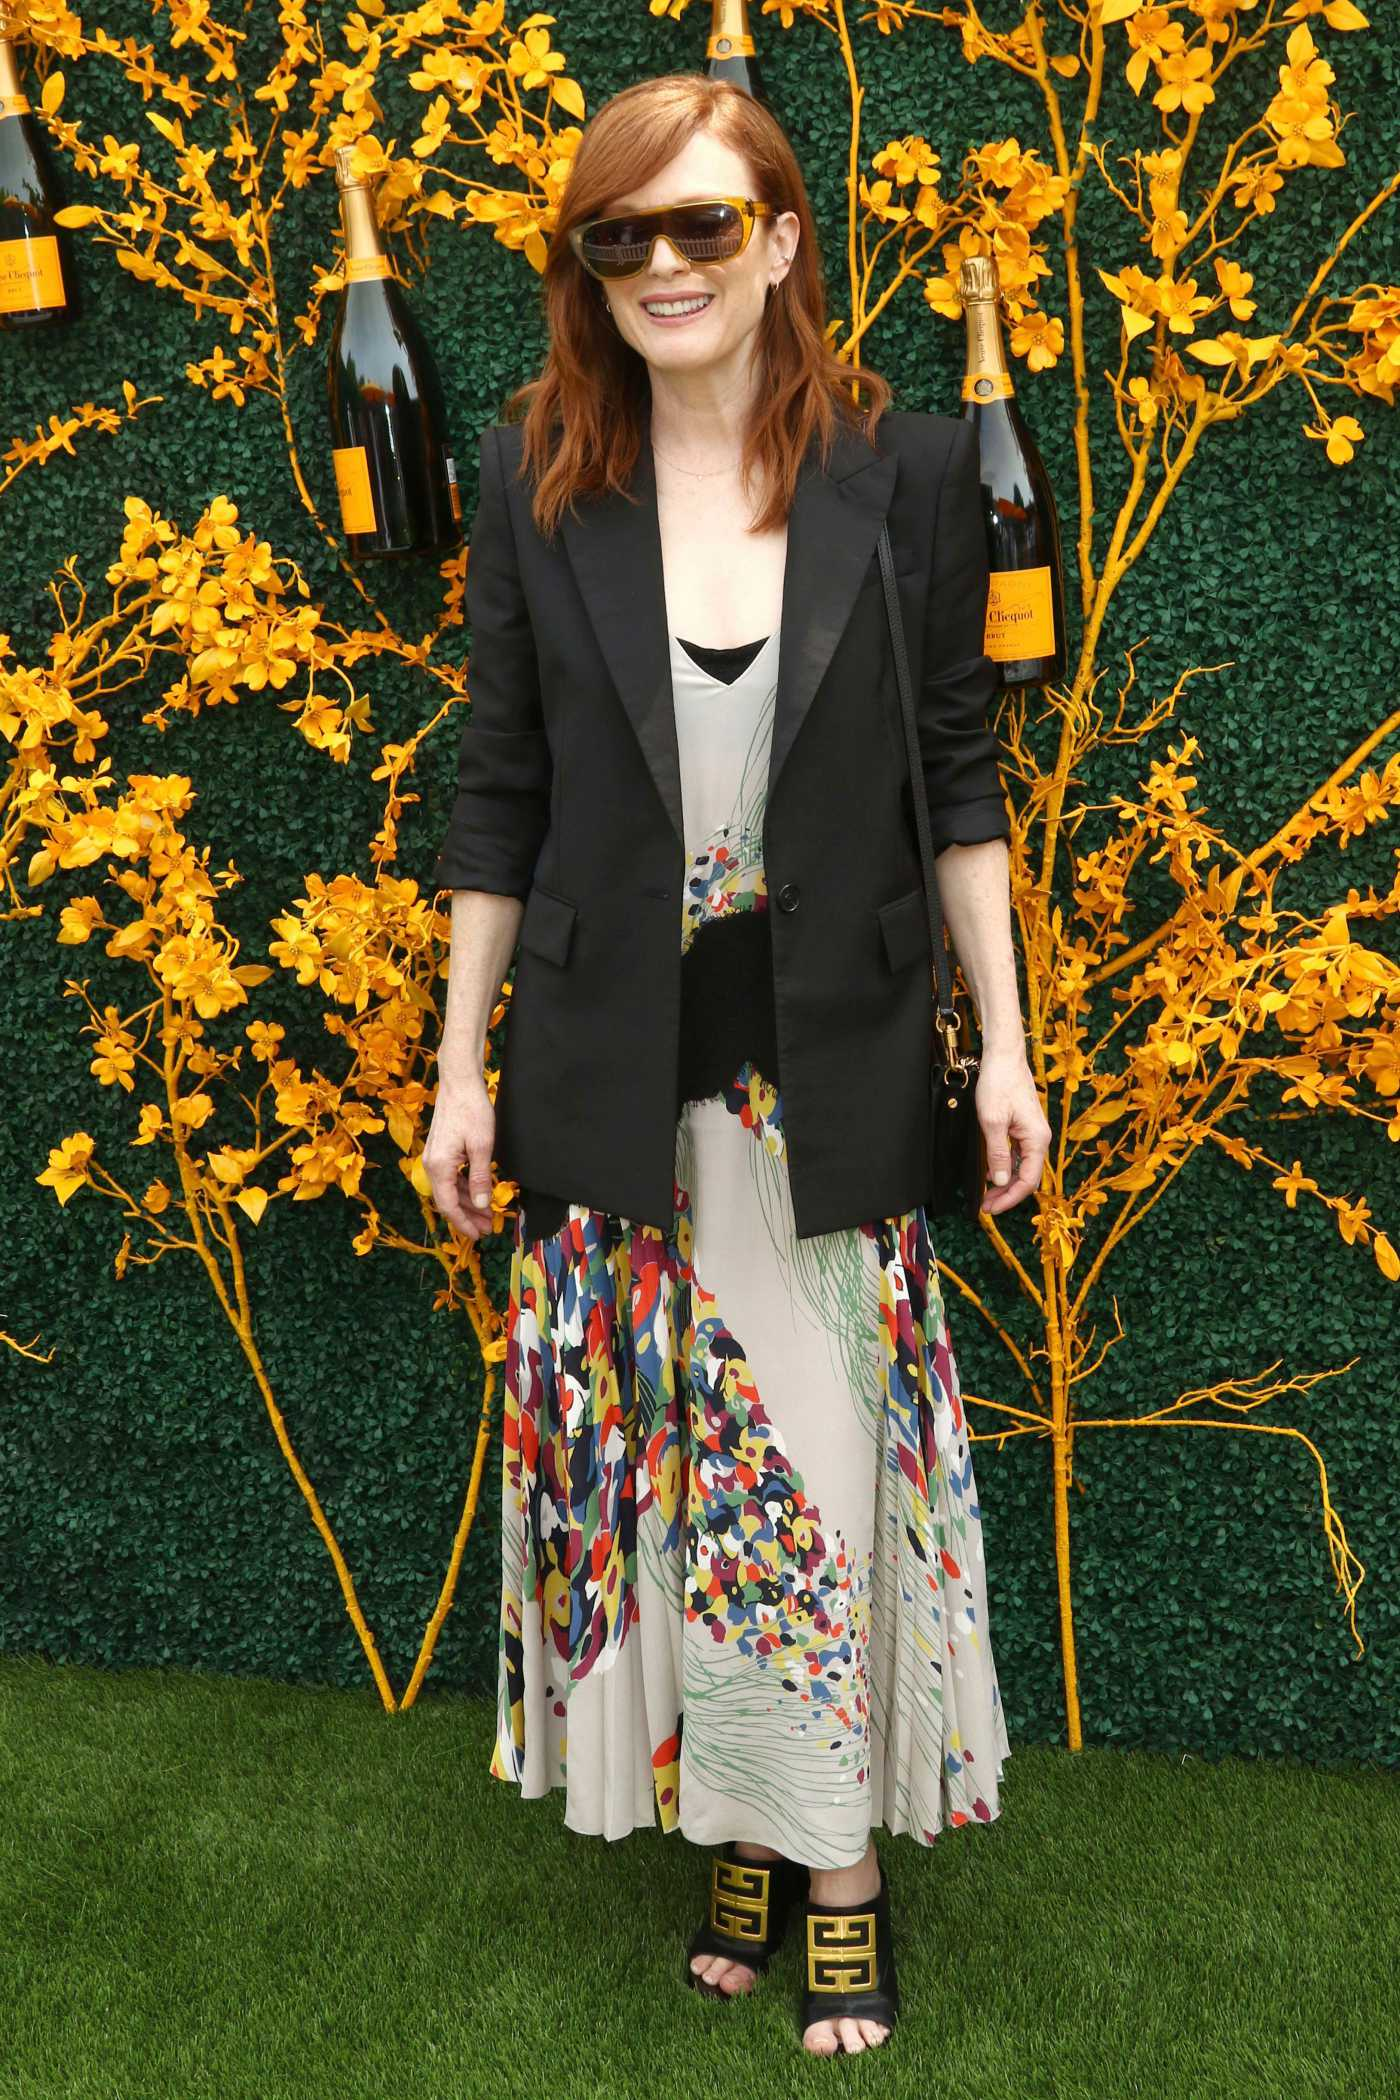 Julianne Moore Attends the 12th Annual Veuve Clicquot Polo Classic at Liberty State Park in New Jersey 06/01/2019